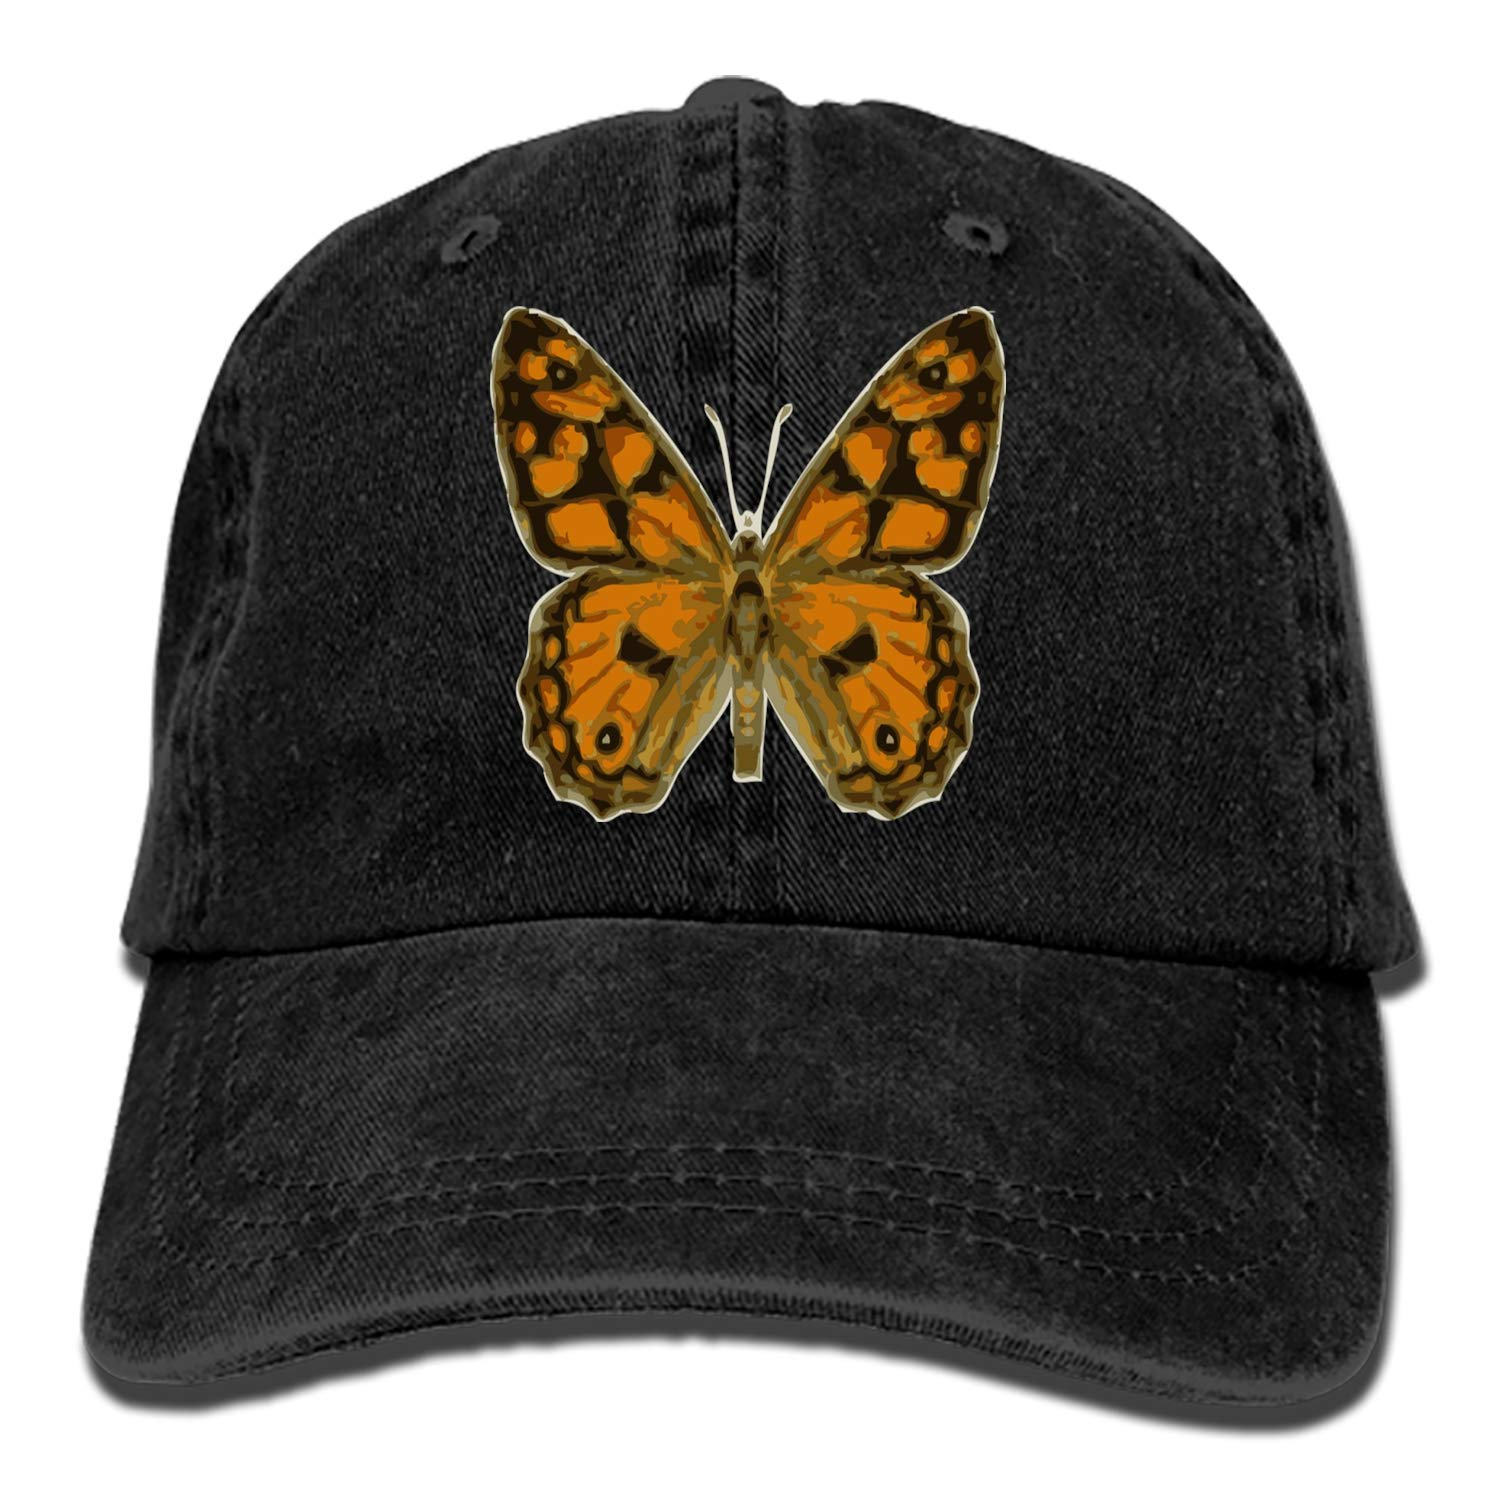 Colorful Dots Classic Washed Cotton Baseball Cap Hip Hop Adjustable Dad Hat